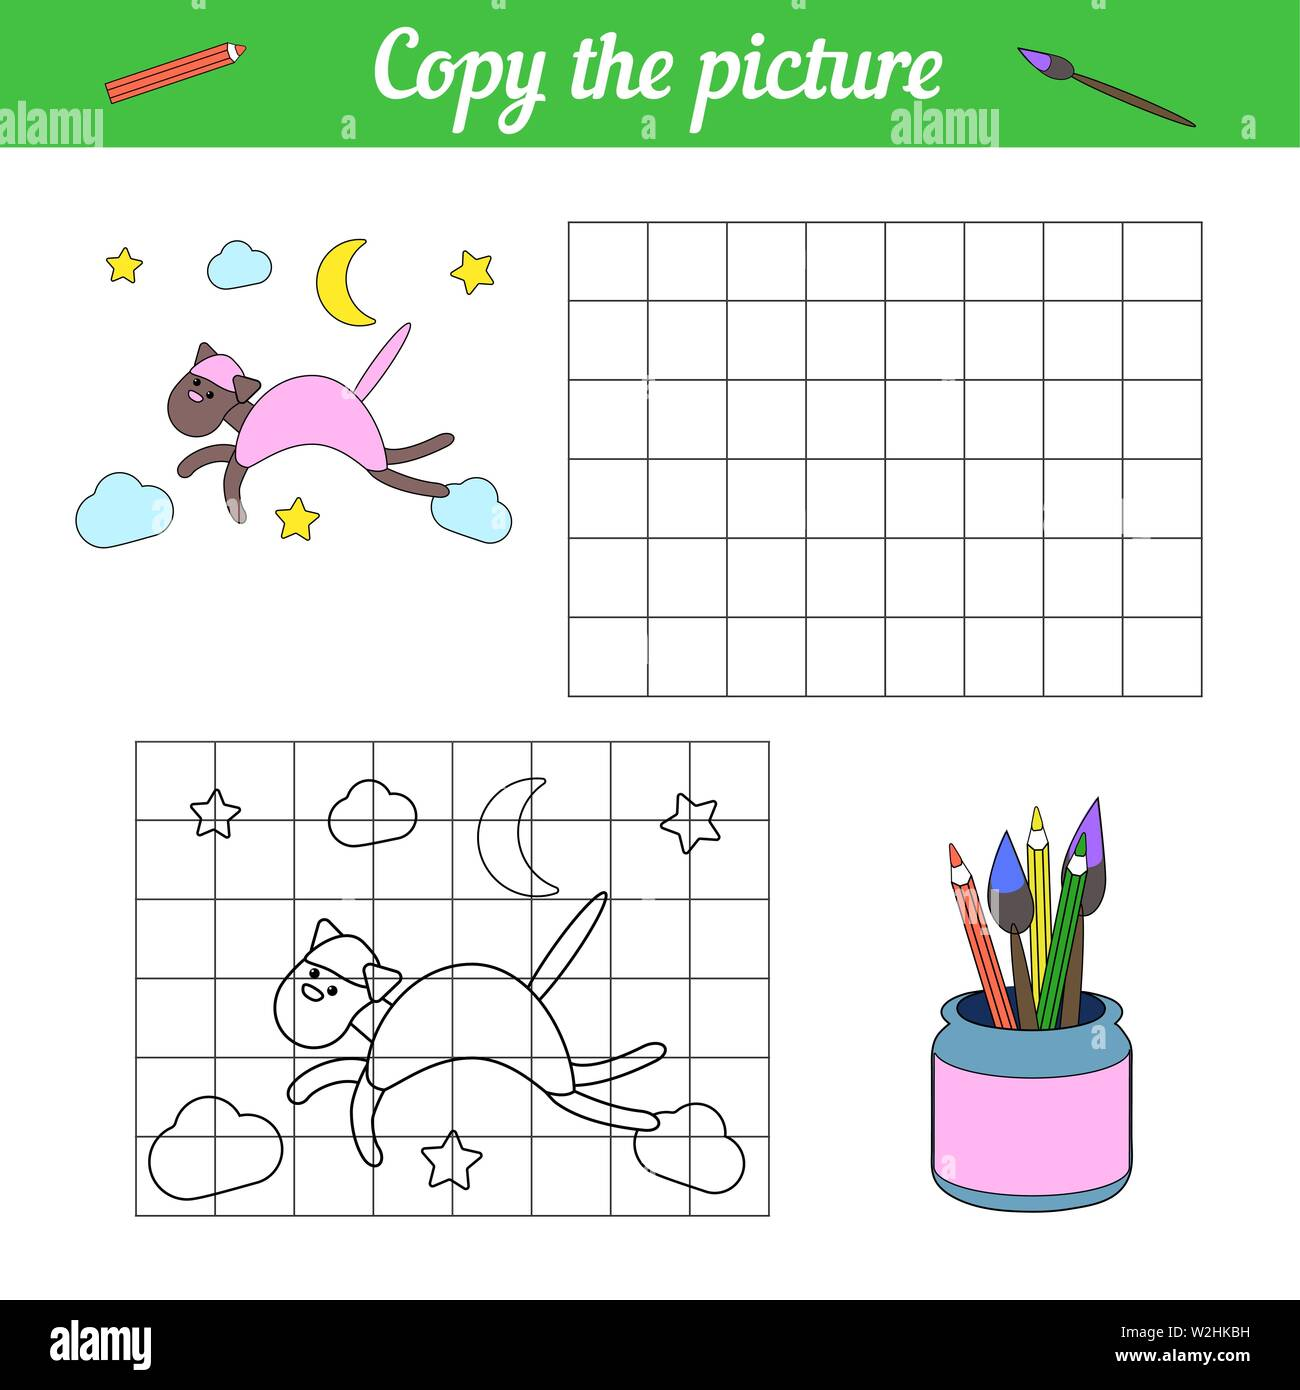 Paper game for preschoolers. Copy the picture and color sample little animal kitten. Cartoon style draw. Educational game for children. Handmade to cr Stock Vector